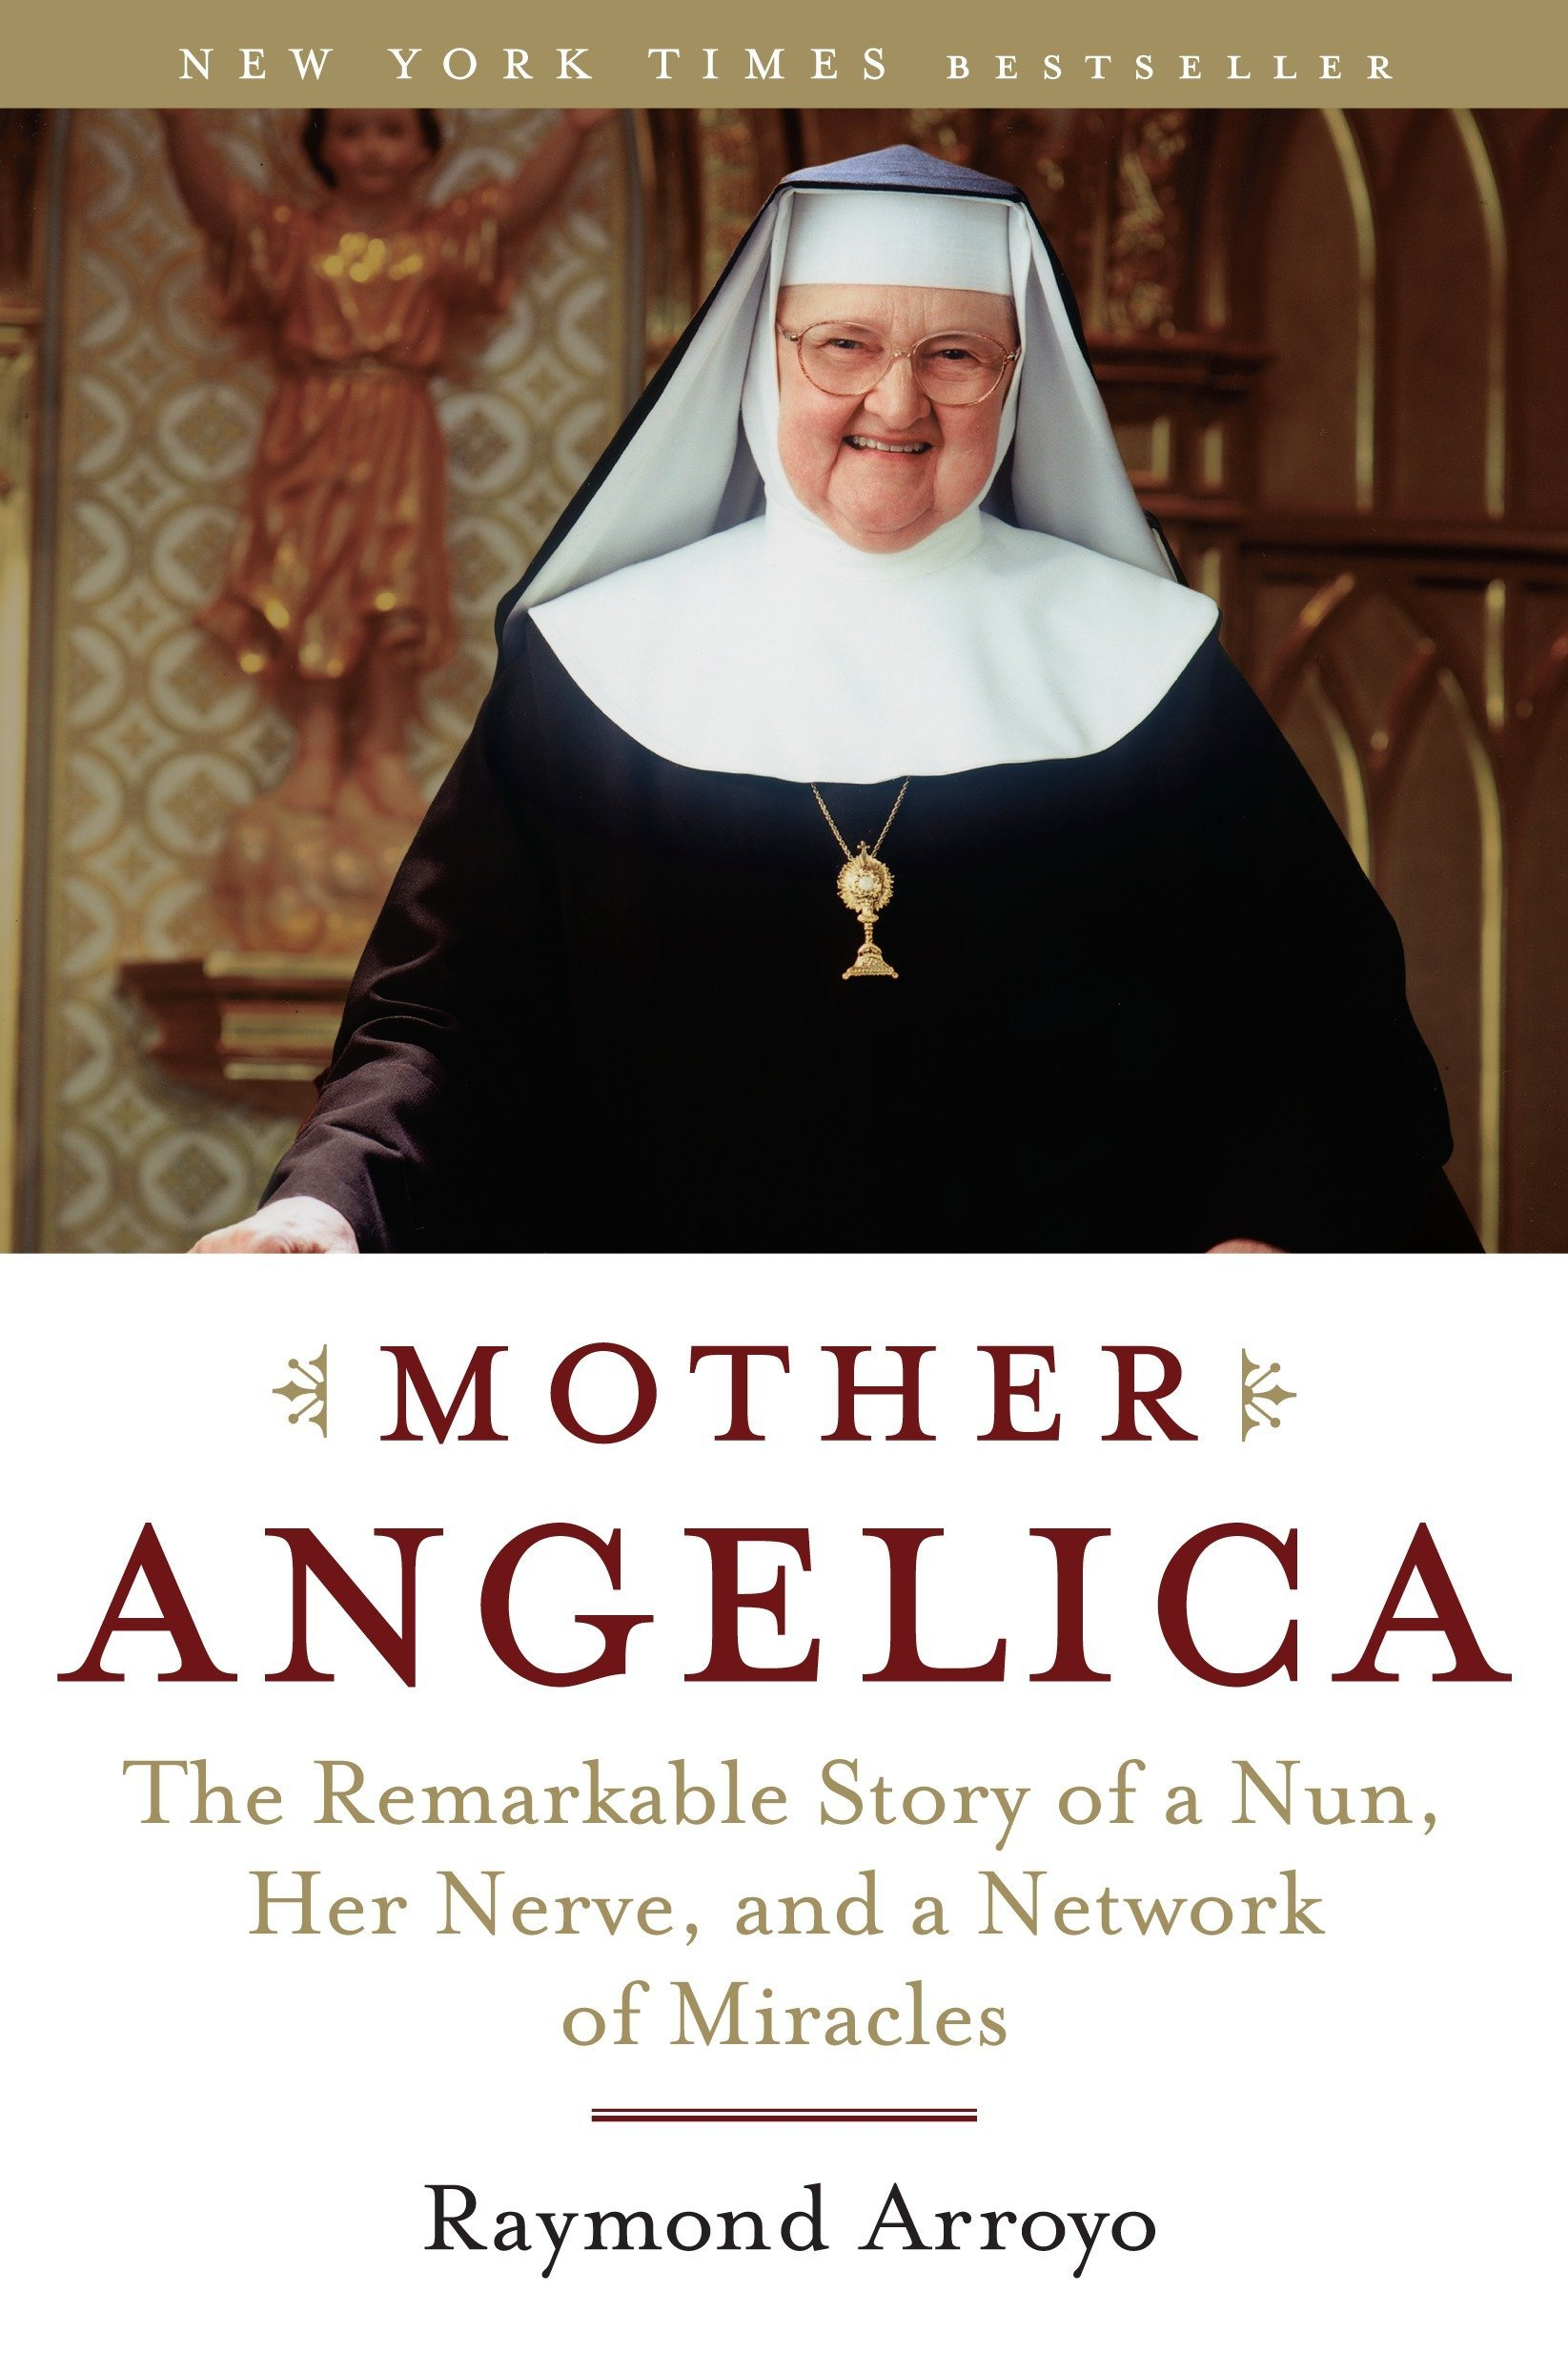 Mother Angelica: The Remarkable Story of a Nun, Her Nerve, and a Network of  Miracles: Arroyo, Raymond: 9780385510936: Amazon.com: Books